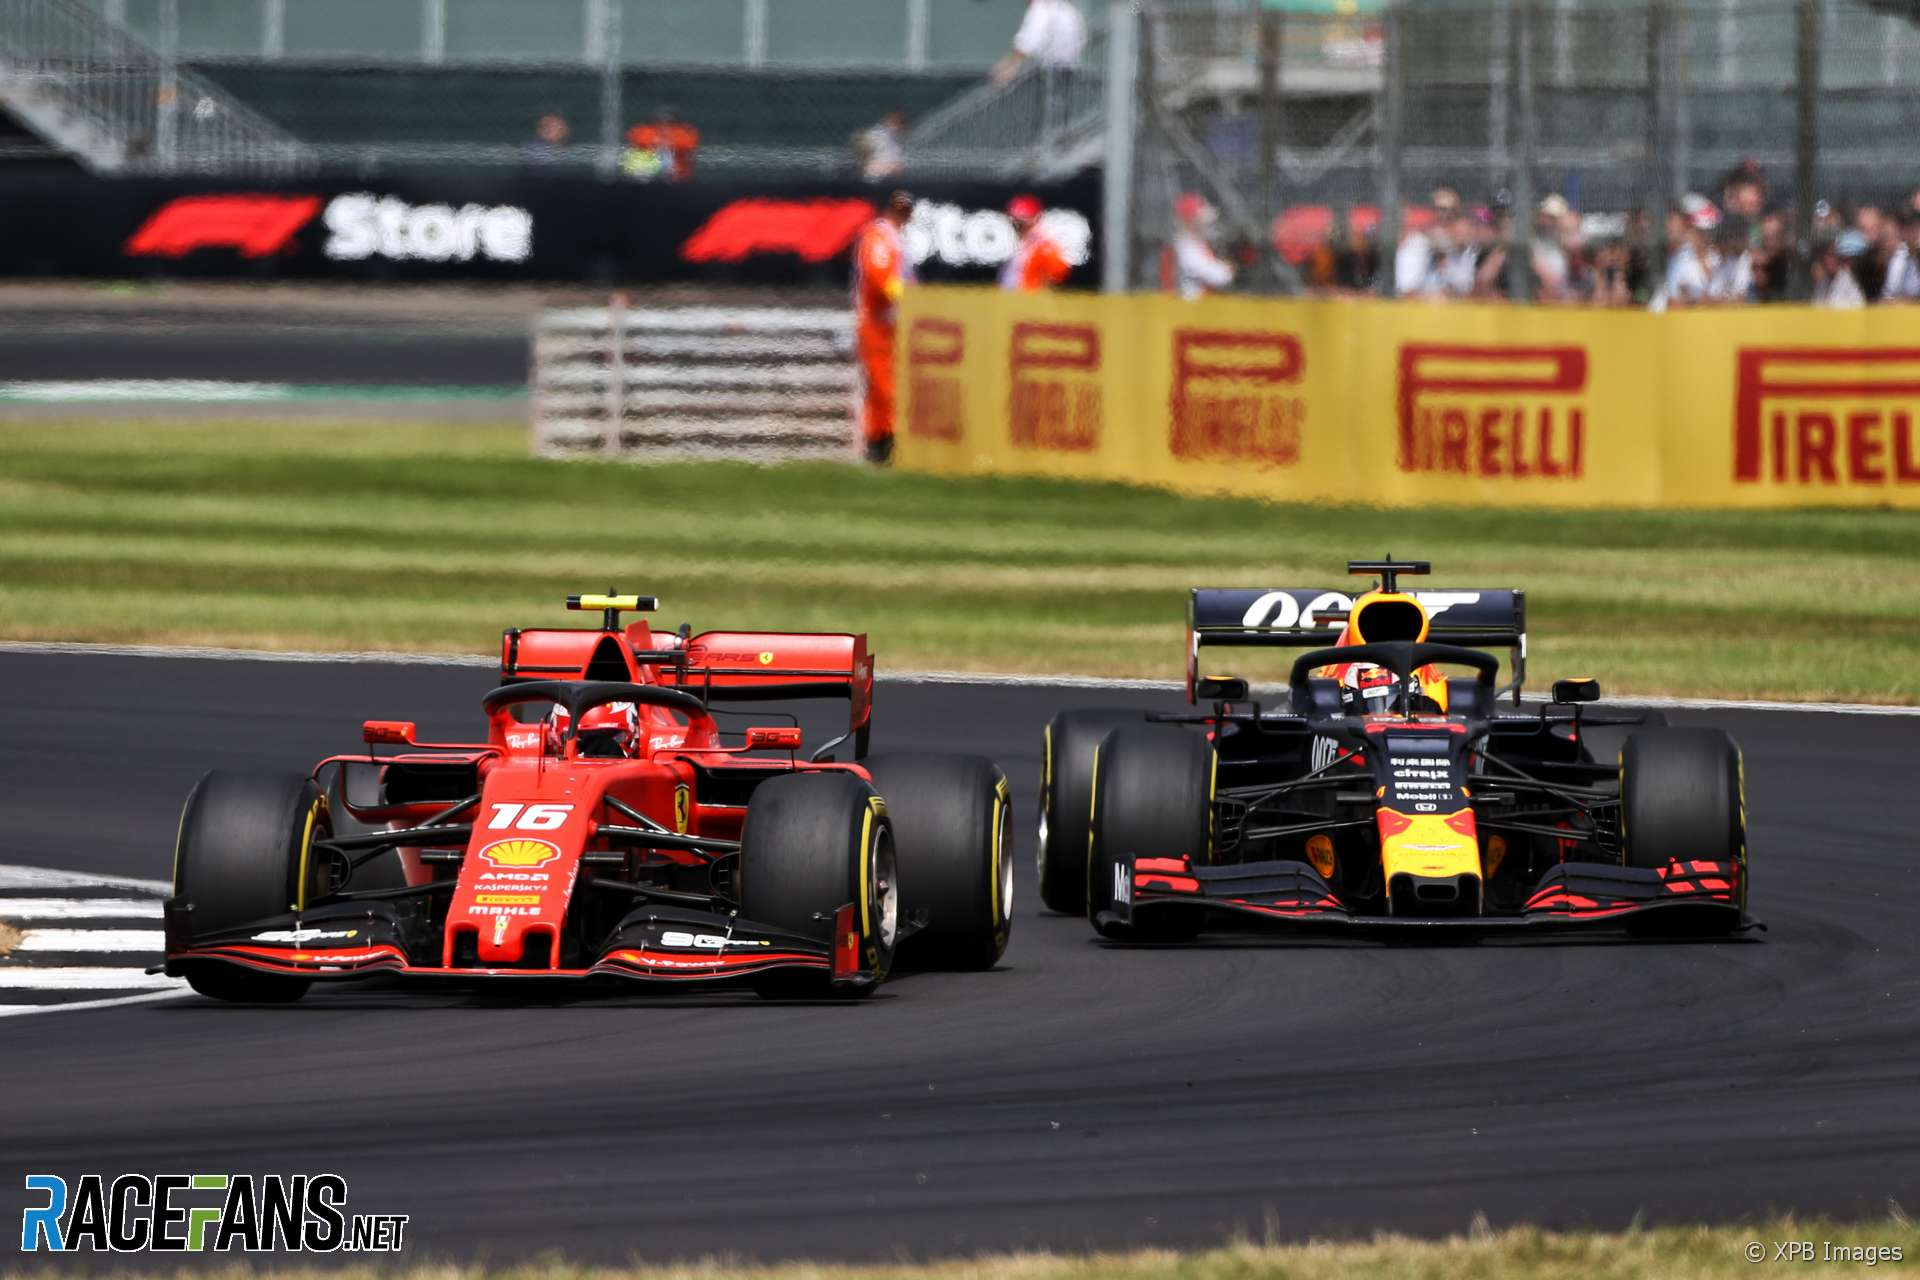 Why Red Bull vs Ferrari is now the championship fight to watch | 2019 F1 season